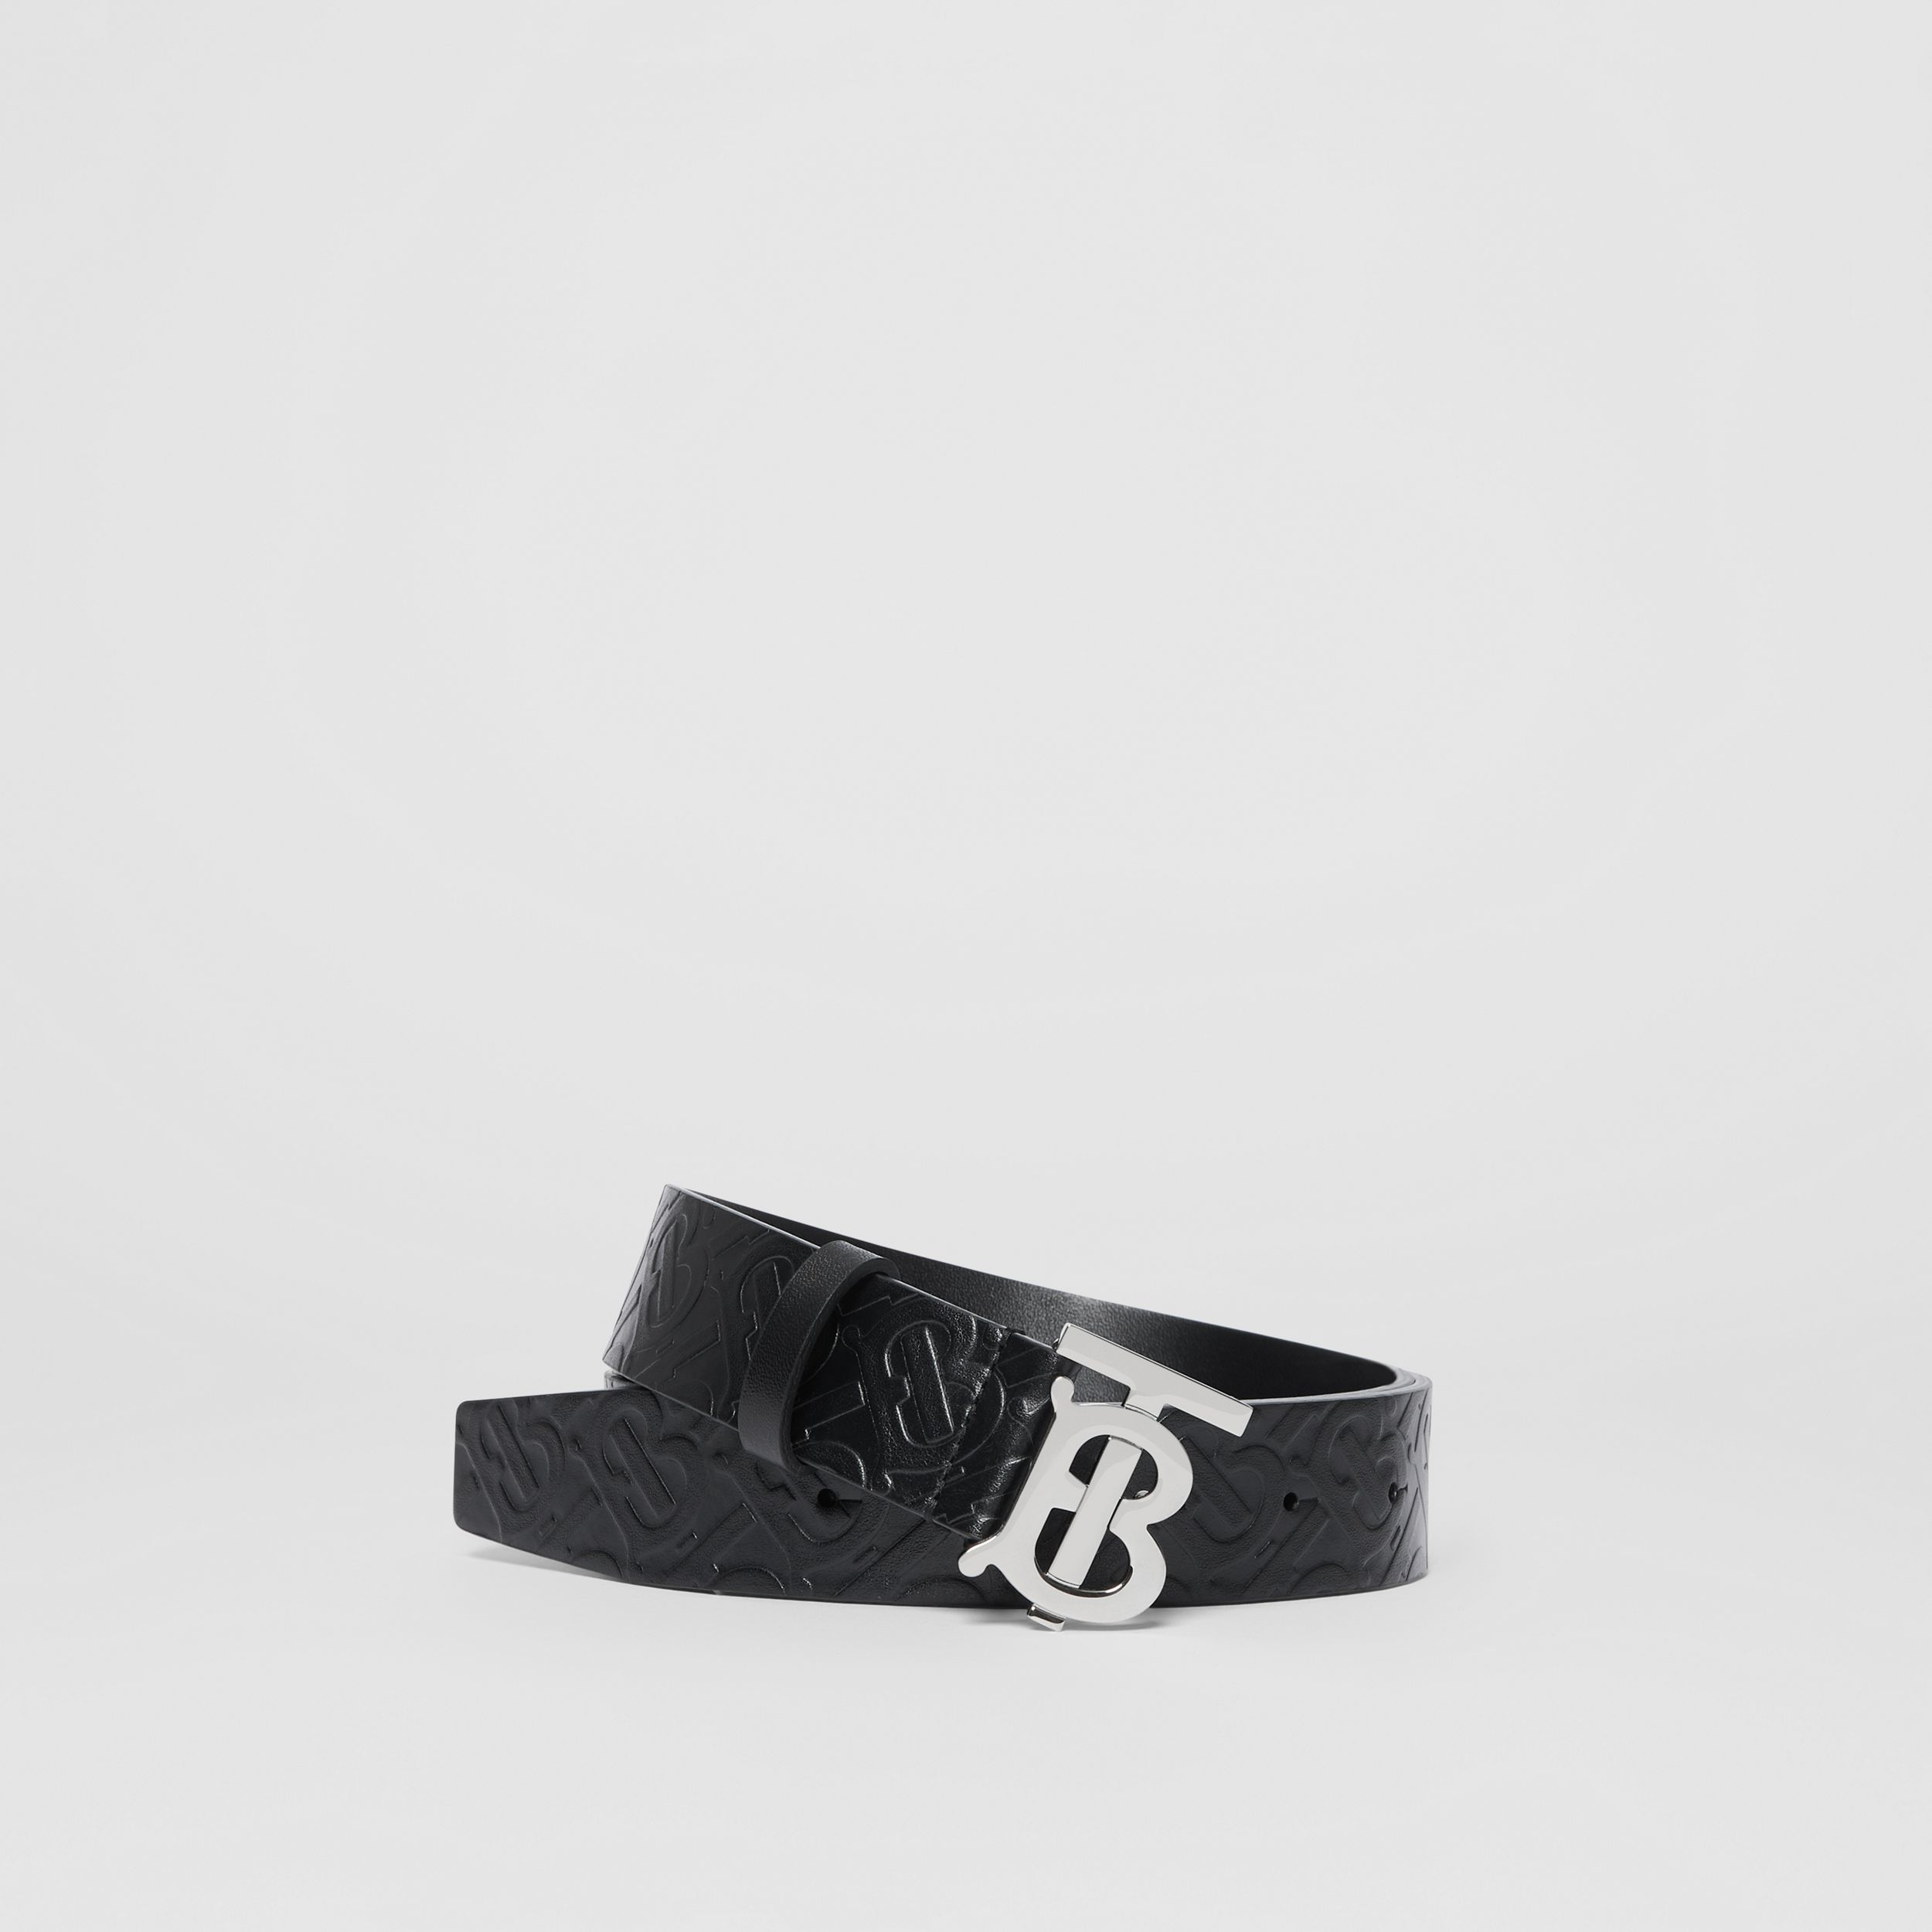 Monogram Motif Monogram Leather Belt in Black/palladium - Men | Burberry - 1